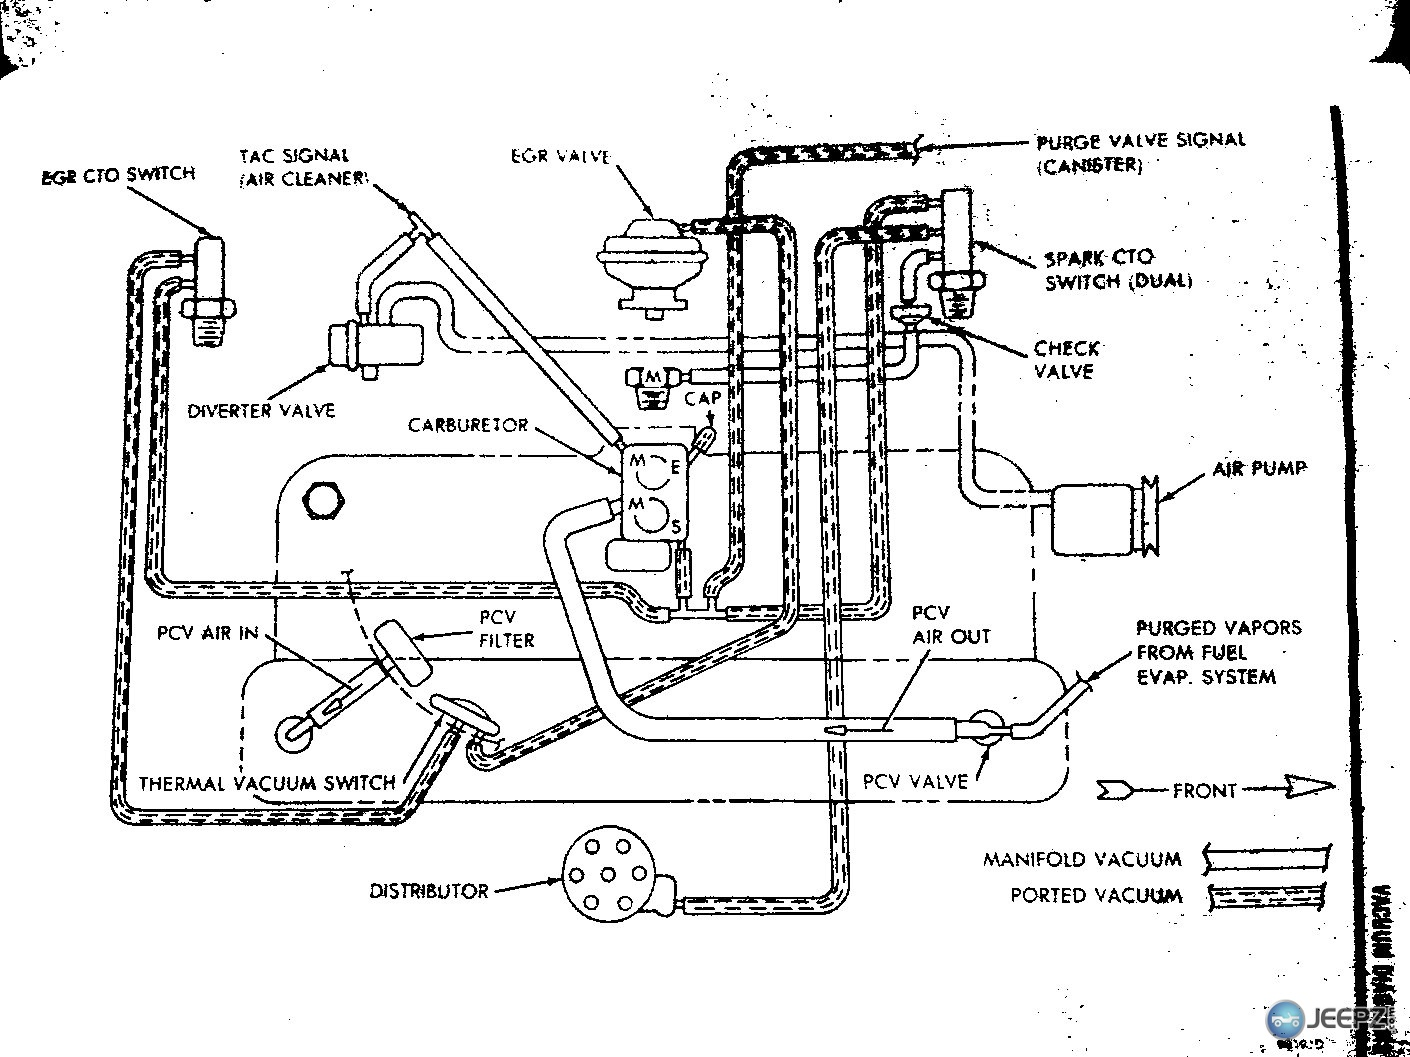 86 jeep cherokee vacuum diagram bl 3258  furthermore jeep grand cherokee vacuum hose diagram  jeep grand cherokee vacuum hose diagram